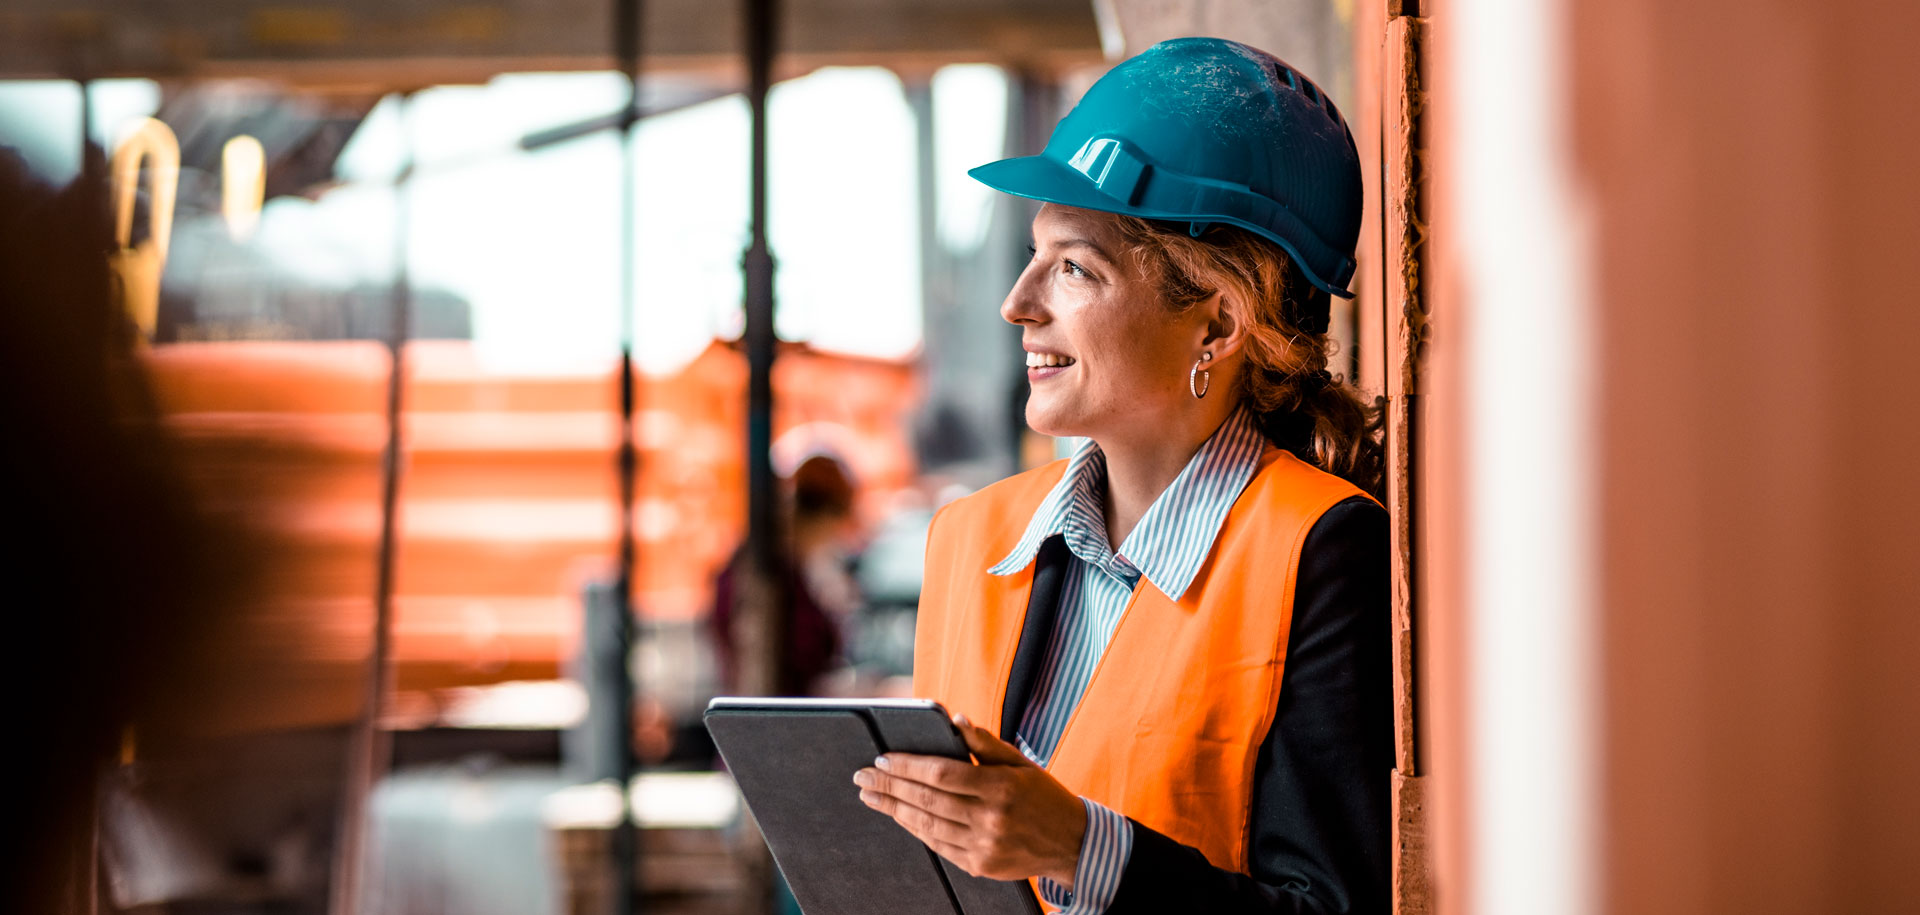 Woman smiling with hardhat on and clipboard in hand